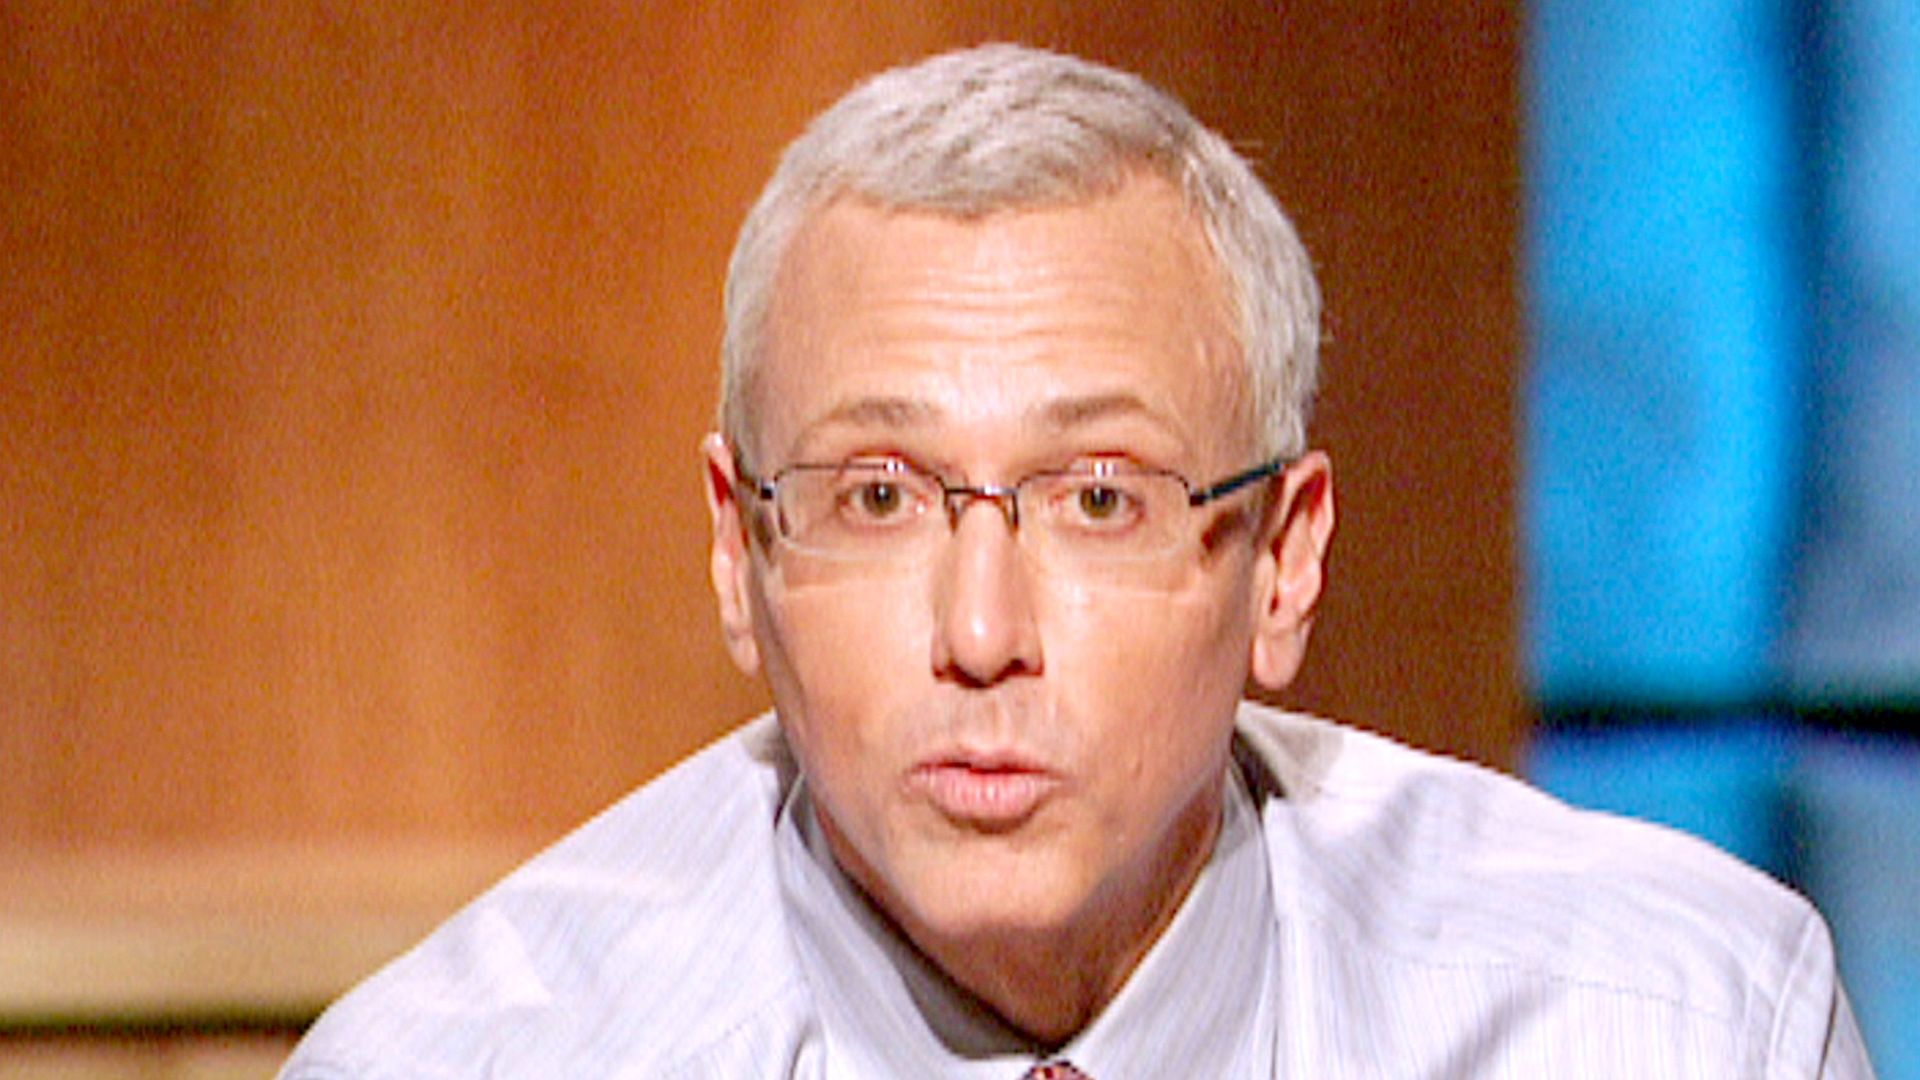 Celebrity Rehab with Dr. Drew - Season 6 - IMDb